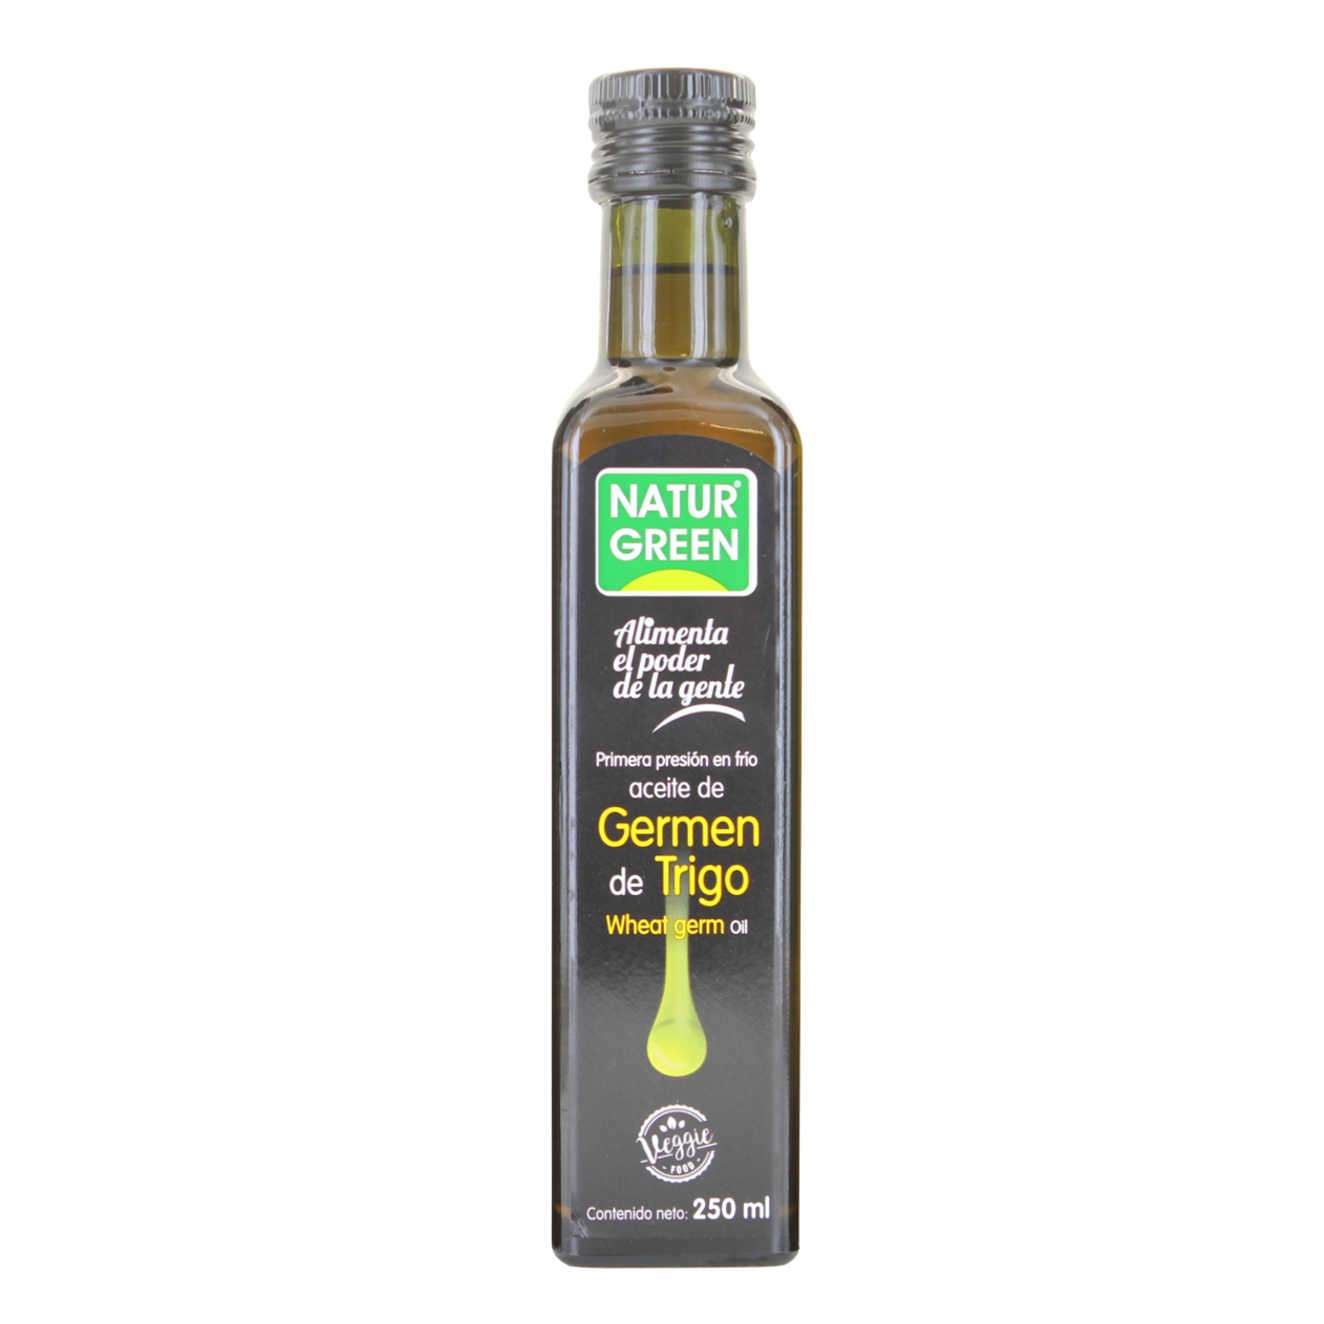 OLIO DI GERME DI GRANO - 250ml